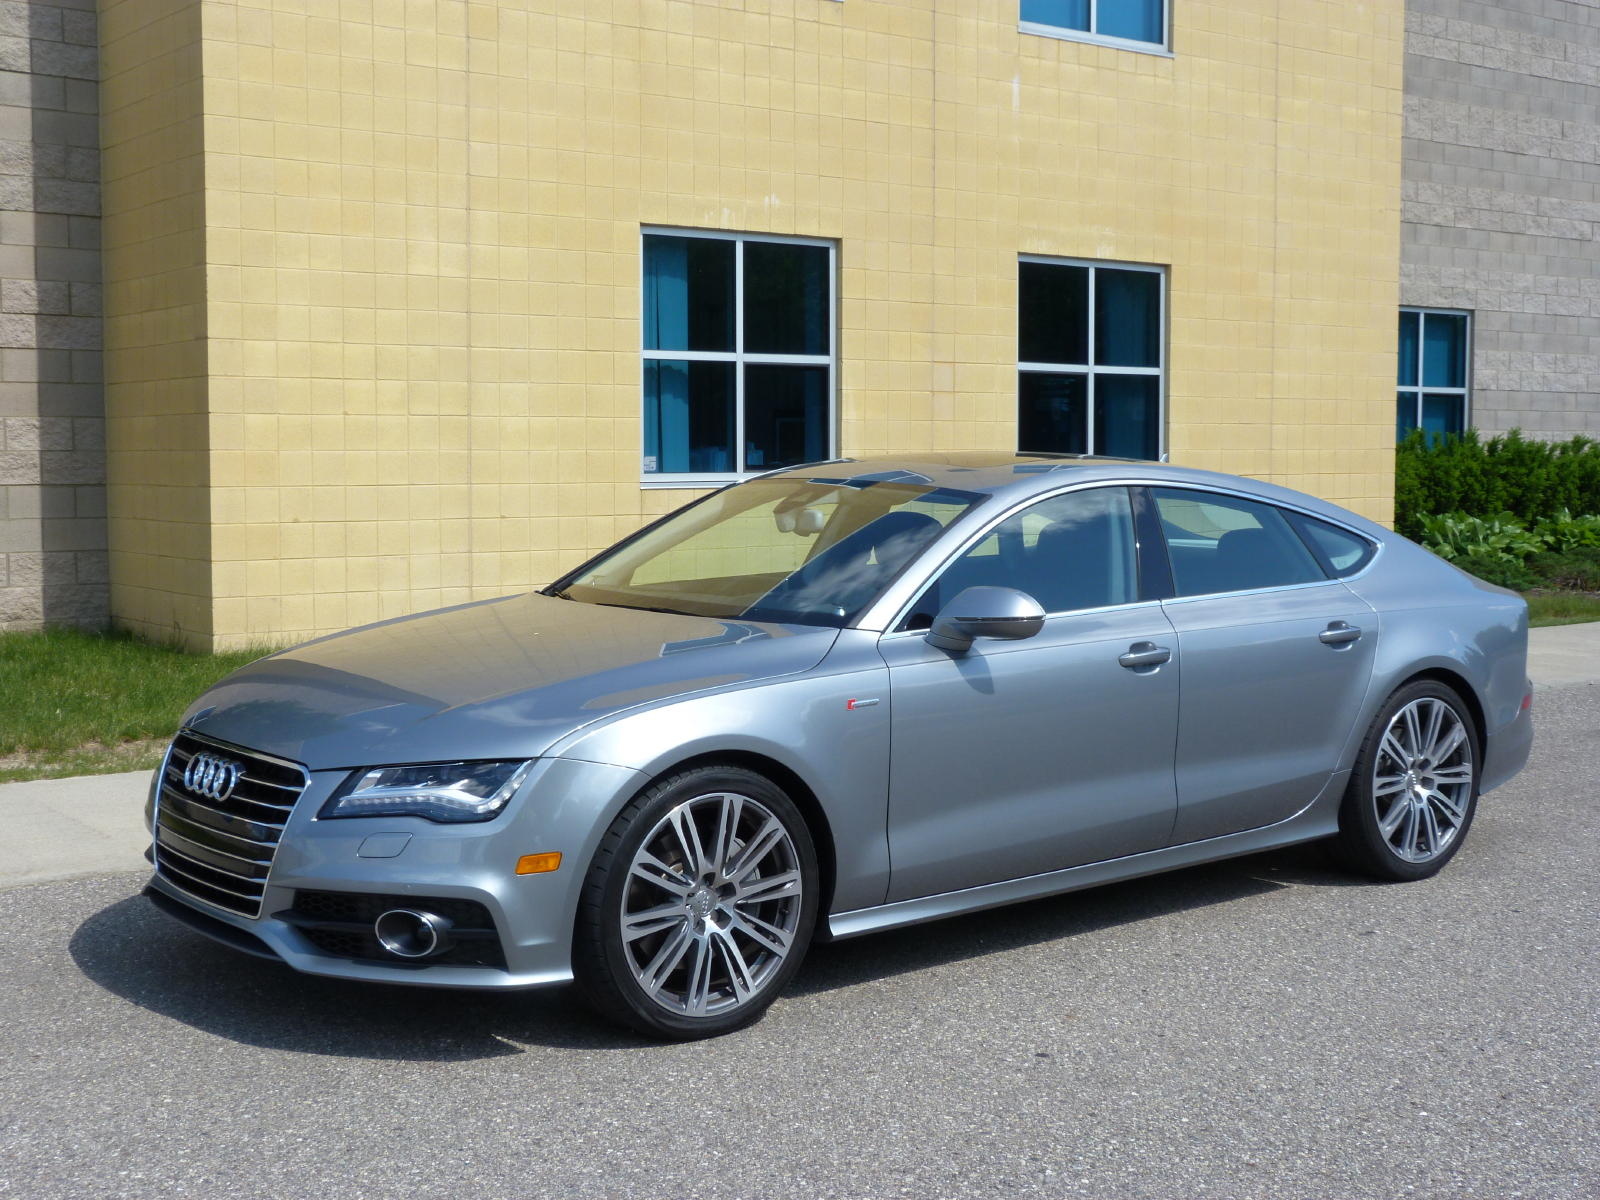 Review: 2012 Audi A7 - The Truth About Cars